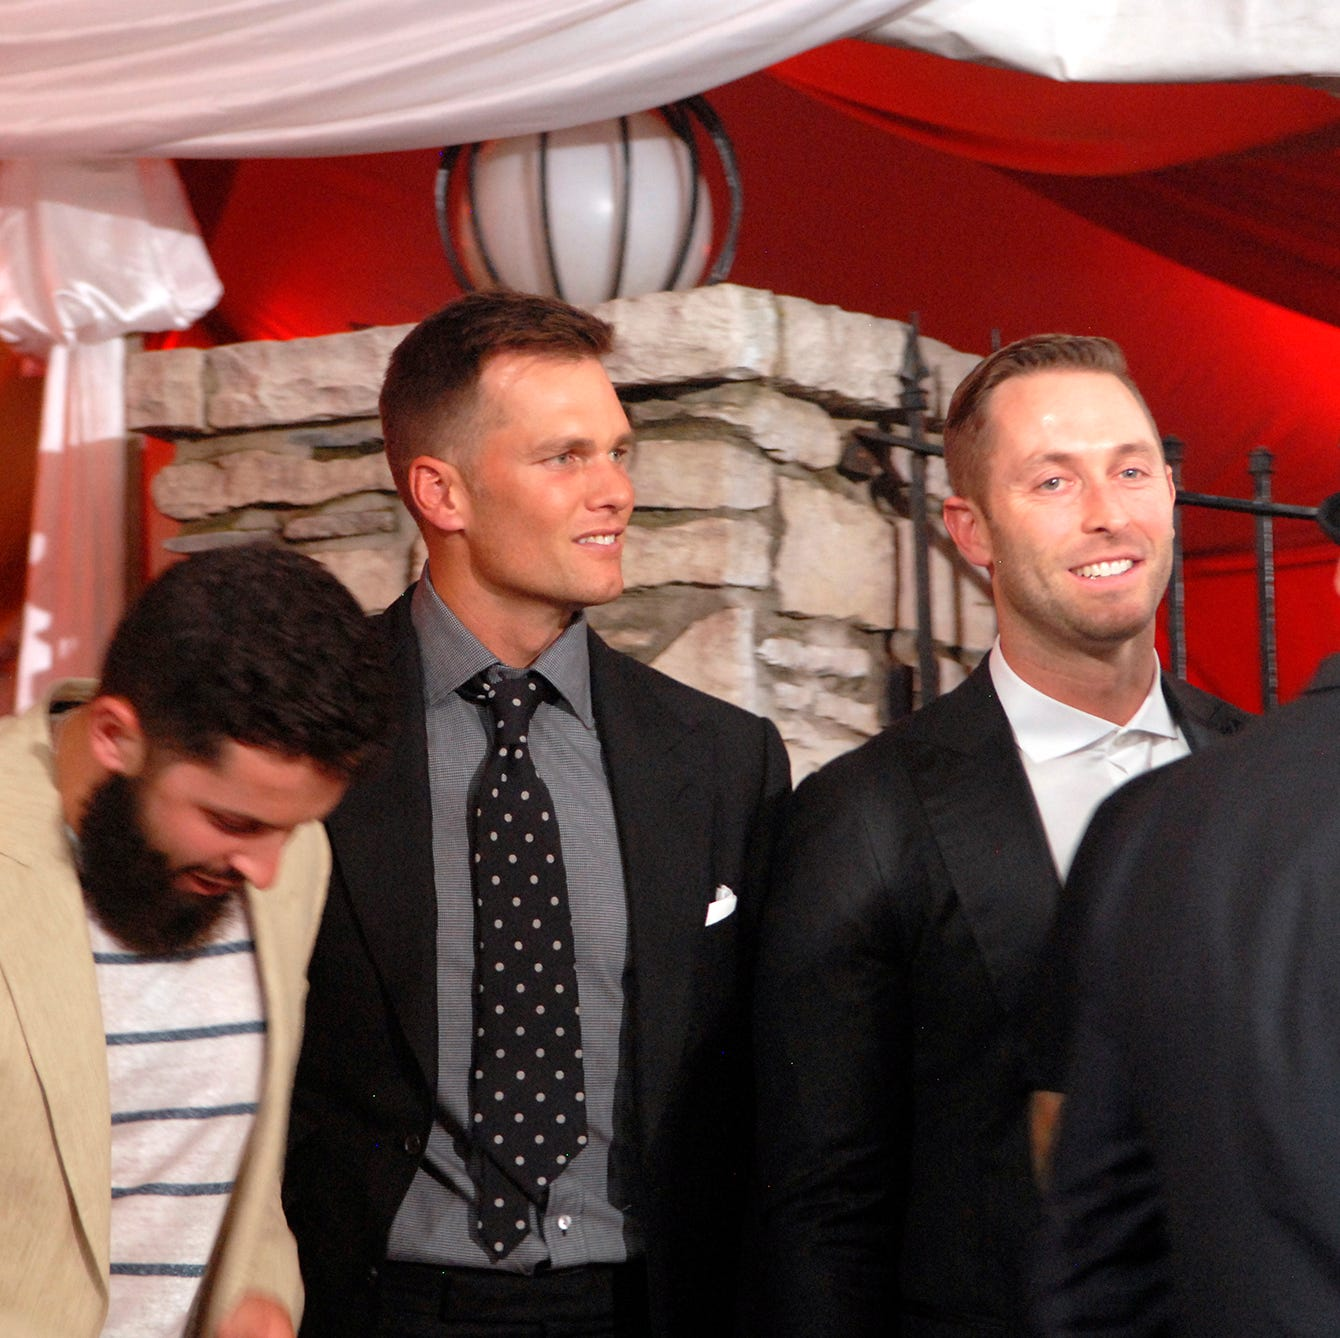 Tom Brady and Danny Amendola made a casual $100K bet after the Kentucky Derby